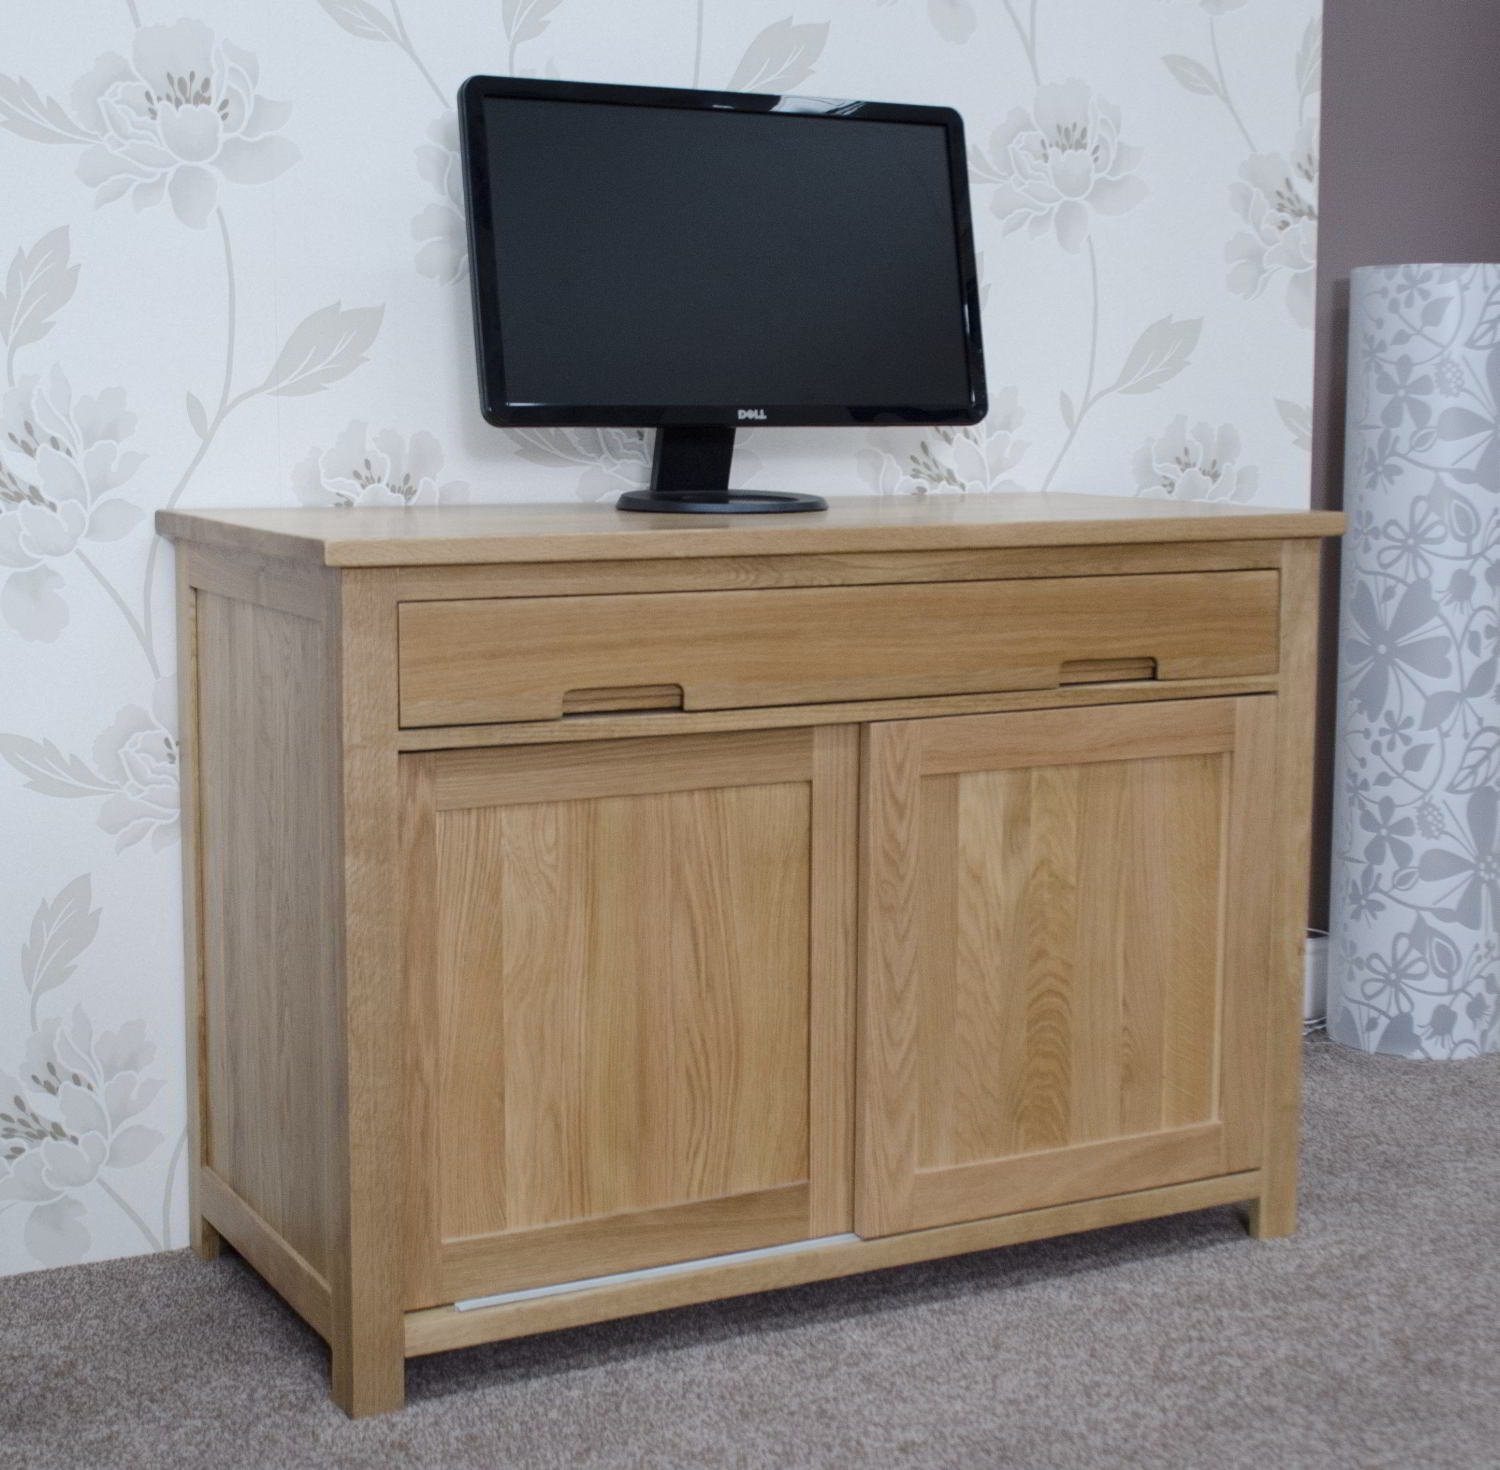 hideaway furniture. Eton Solid Oak Furniture Home Office PC Hideaway Computer Desk: Amazon.co.uk: Kitchen \u0026 W